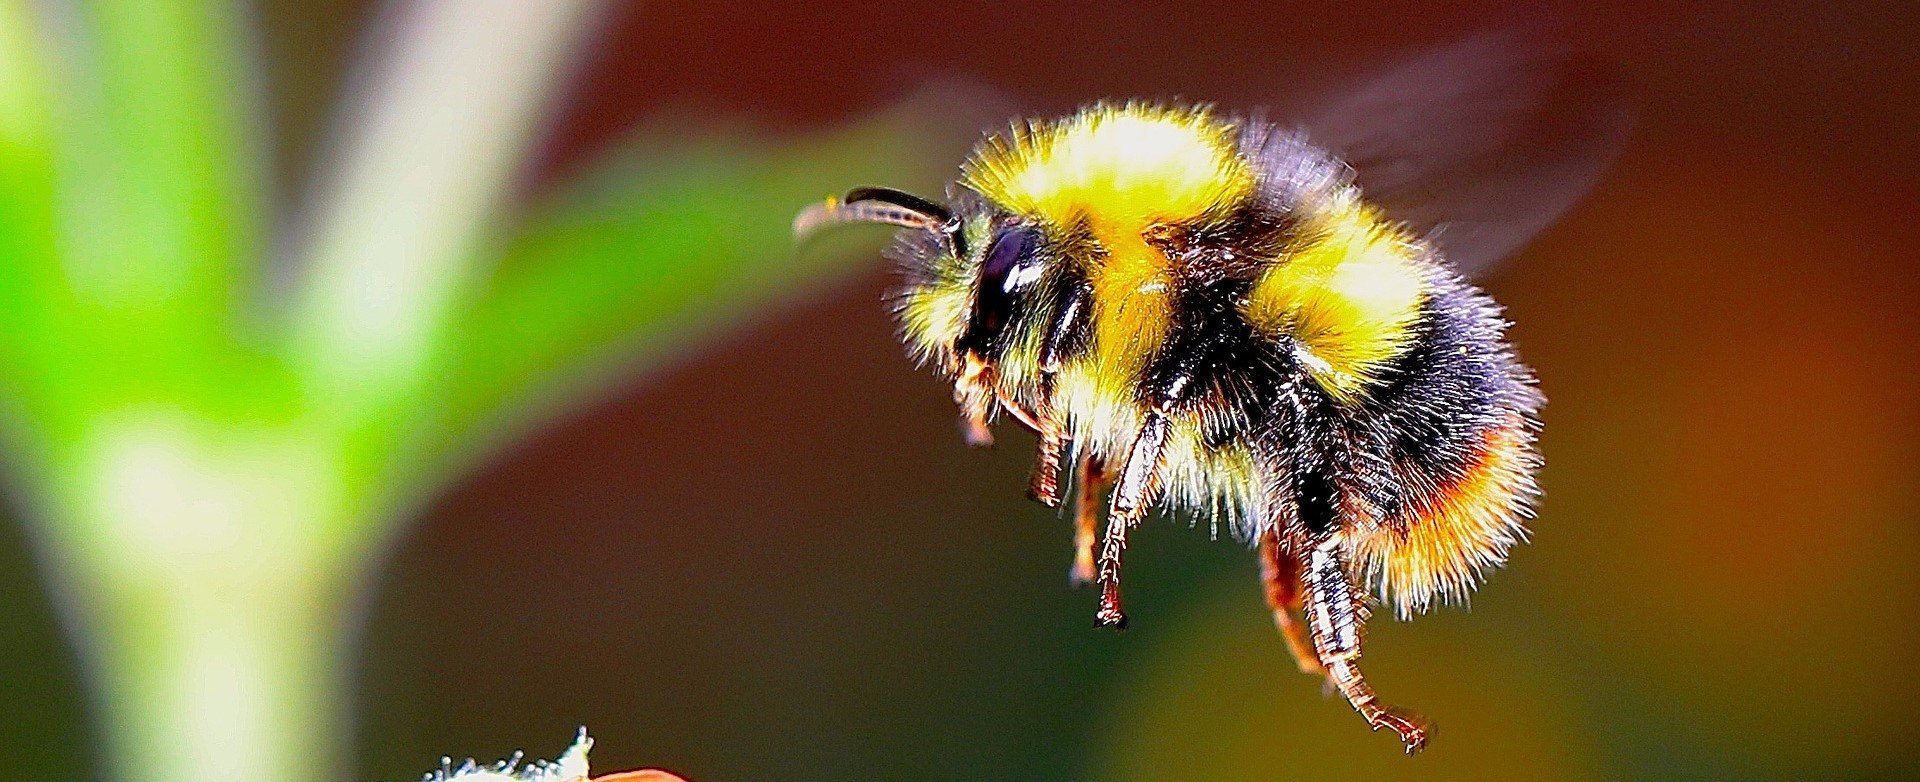 Image of flying bumble bee searching for pollen